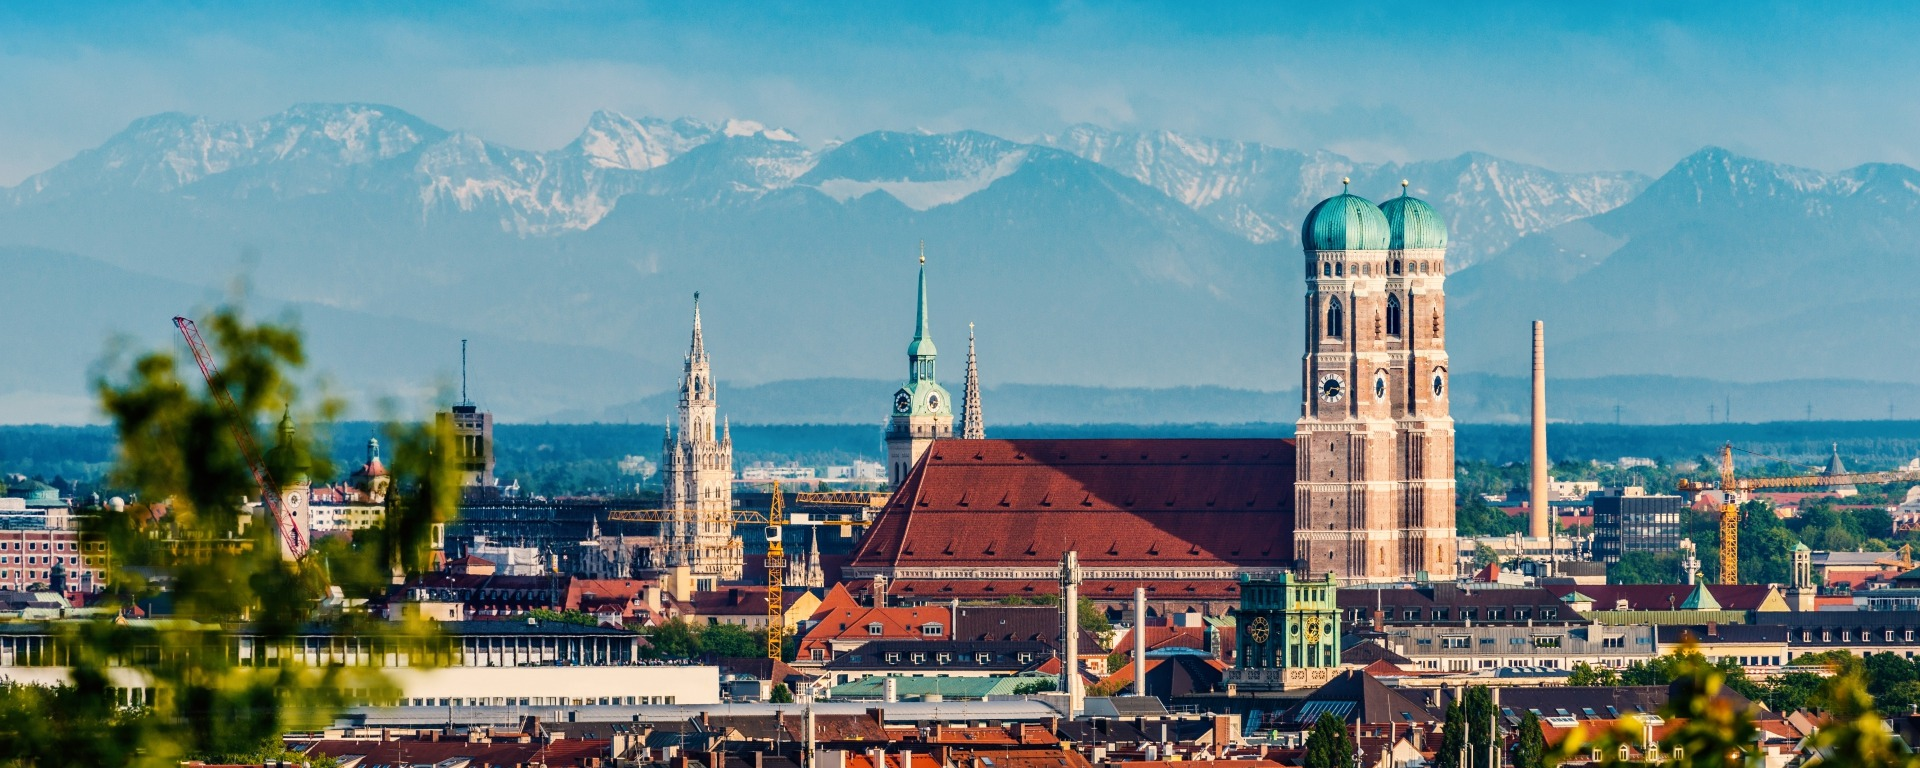 Munich skyline and the alps in the background